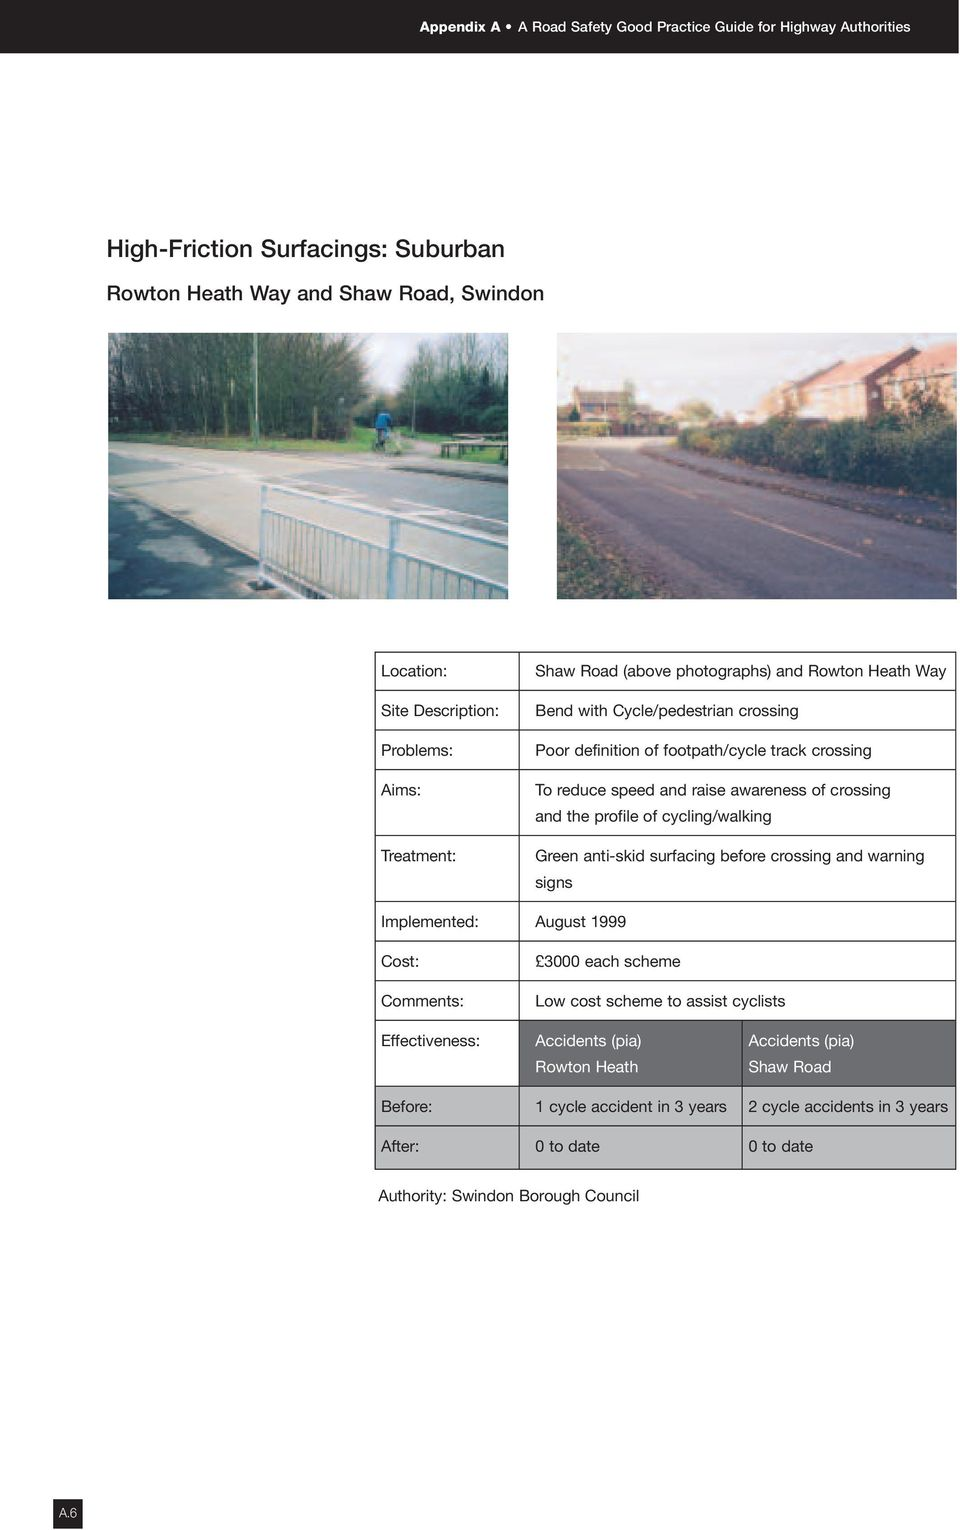 crossing and the profile of cycling/walking Green anti-skid surfacing before crossing and warning signs Implemented: August 1999 Cost: Comments: 3000 each scheme Low cost scheme to assist